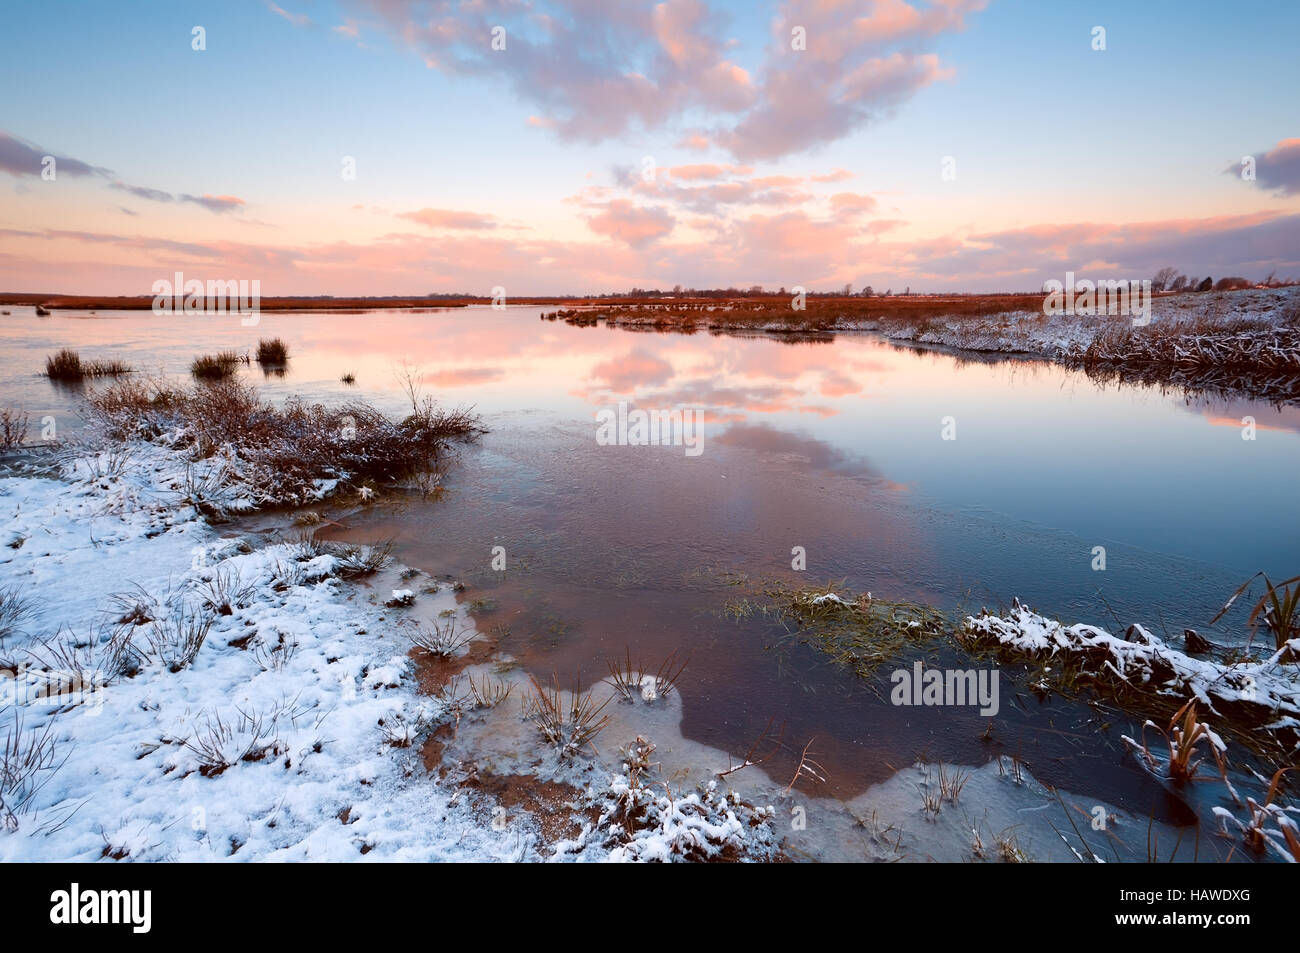 sunrsie over river in winter - Stock Image